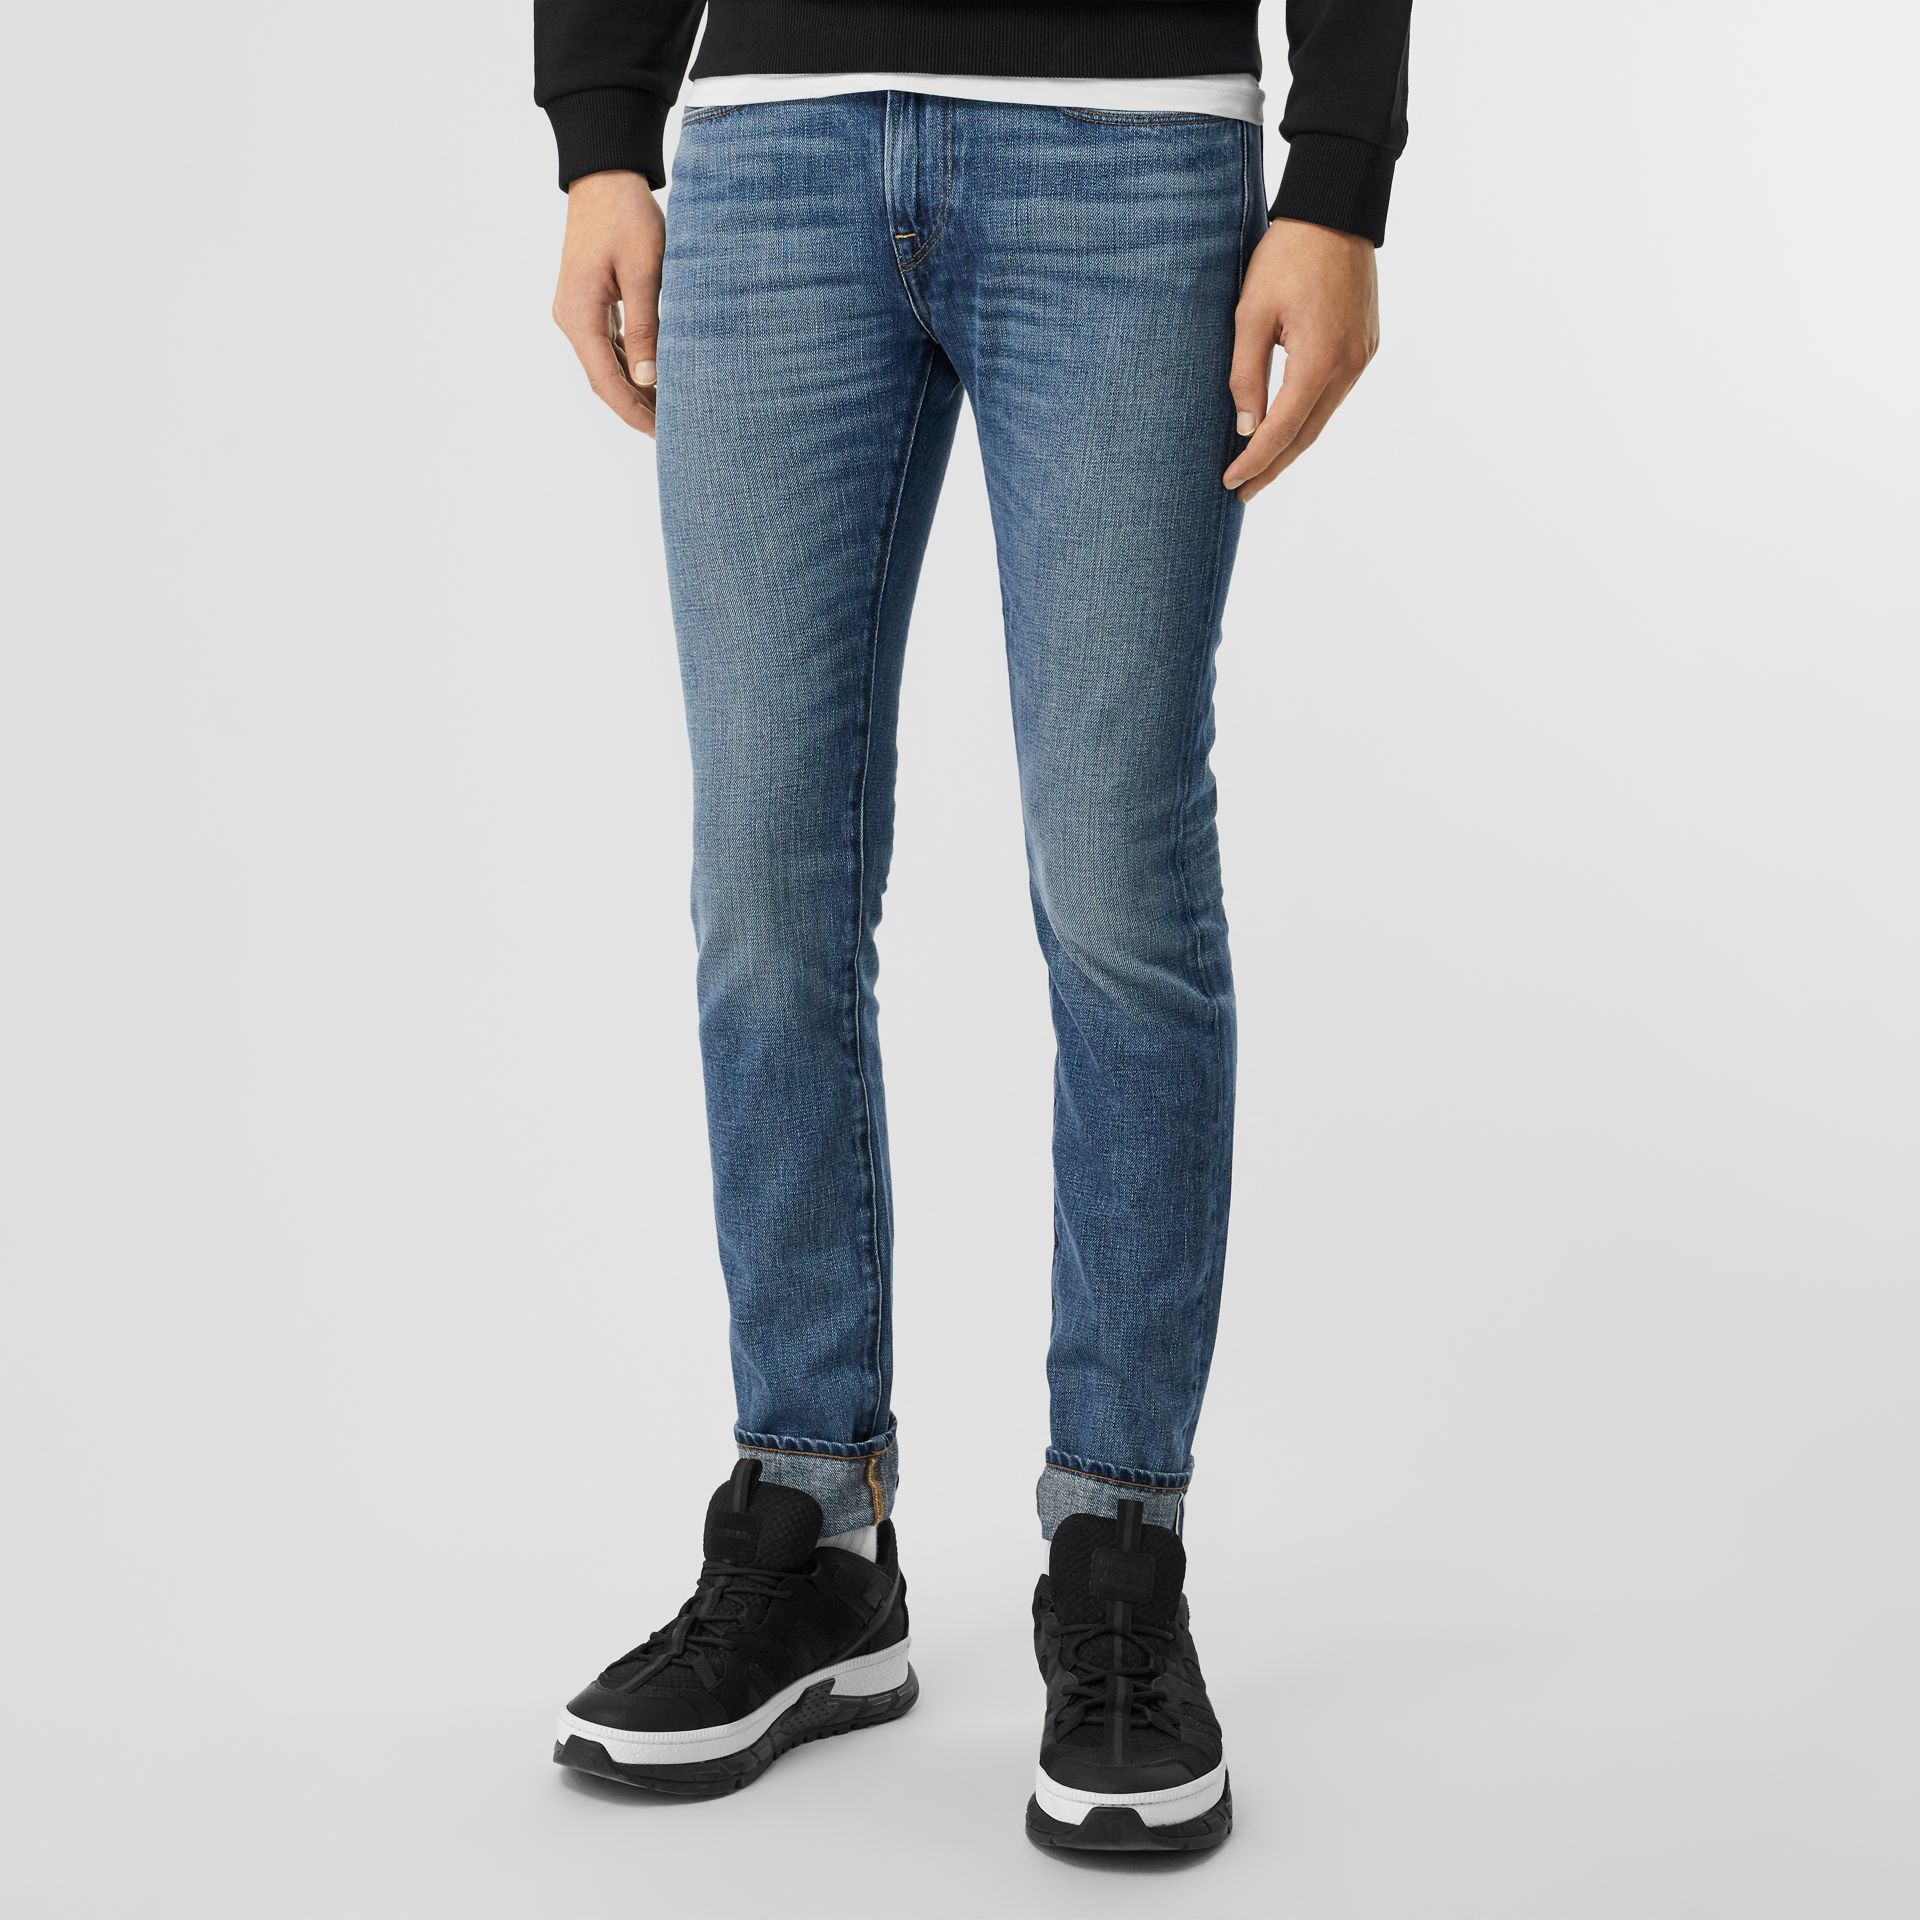 Jean de coupe slim en denim selvedge japonais délavé (Indigo Clair) - Homme | Burberry - photo de la galerie 4